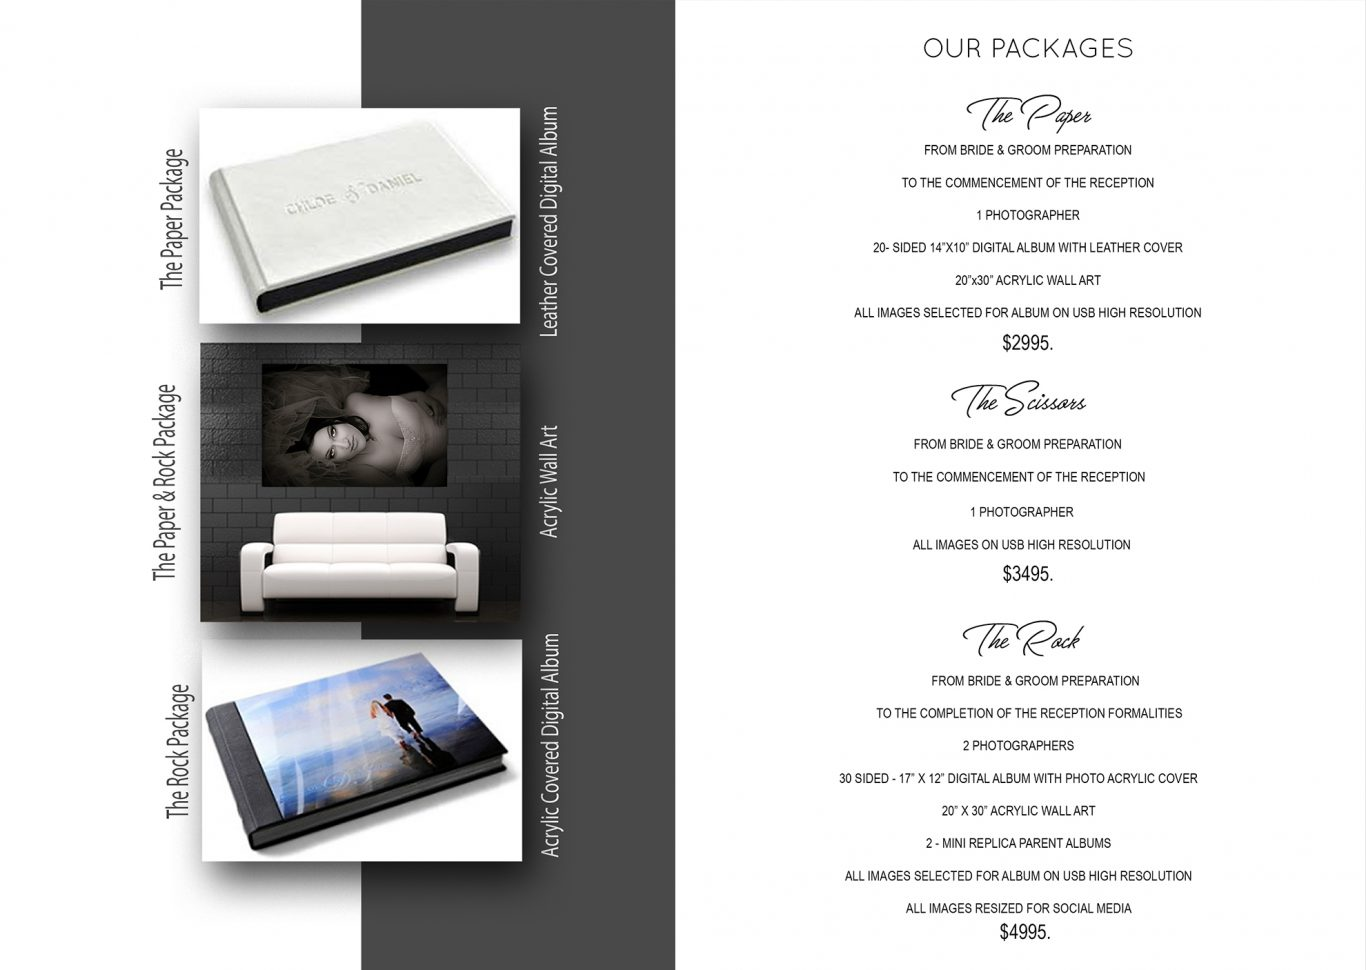 #weddingpackages